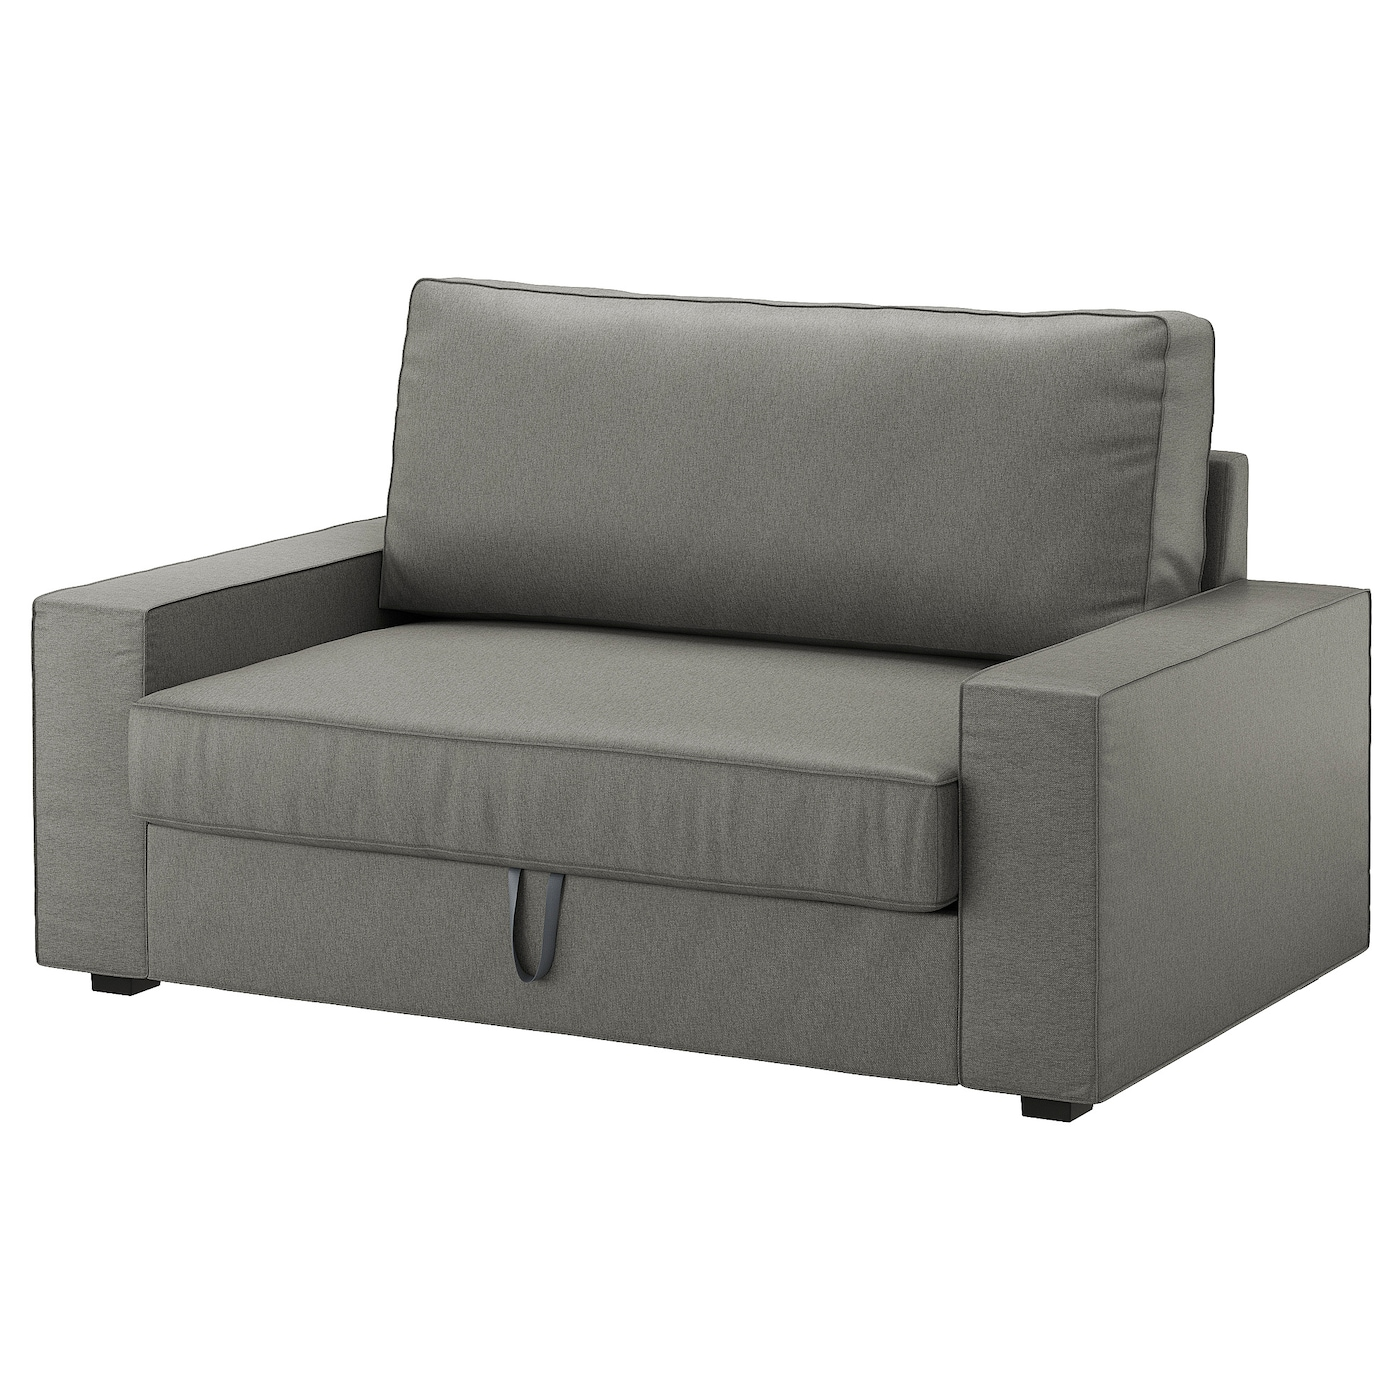 Vilasund two seat sofa bed borred grey green ikea for 90 cm sofa bed